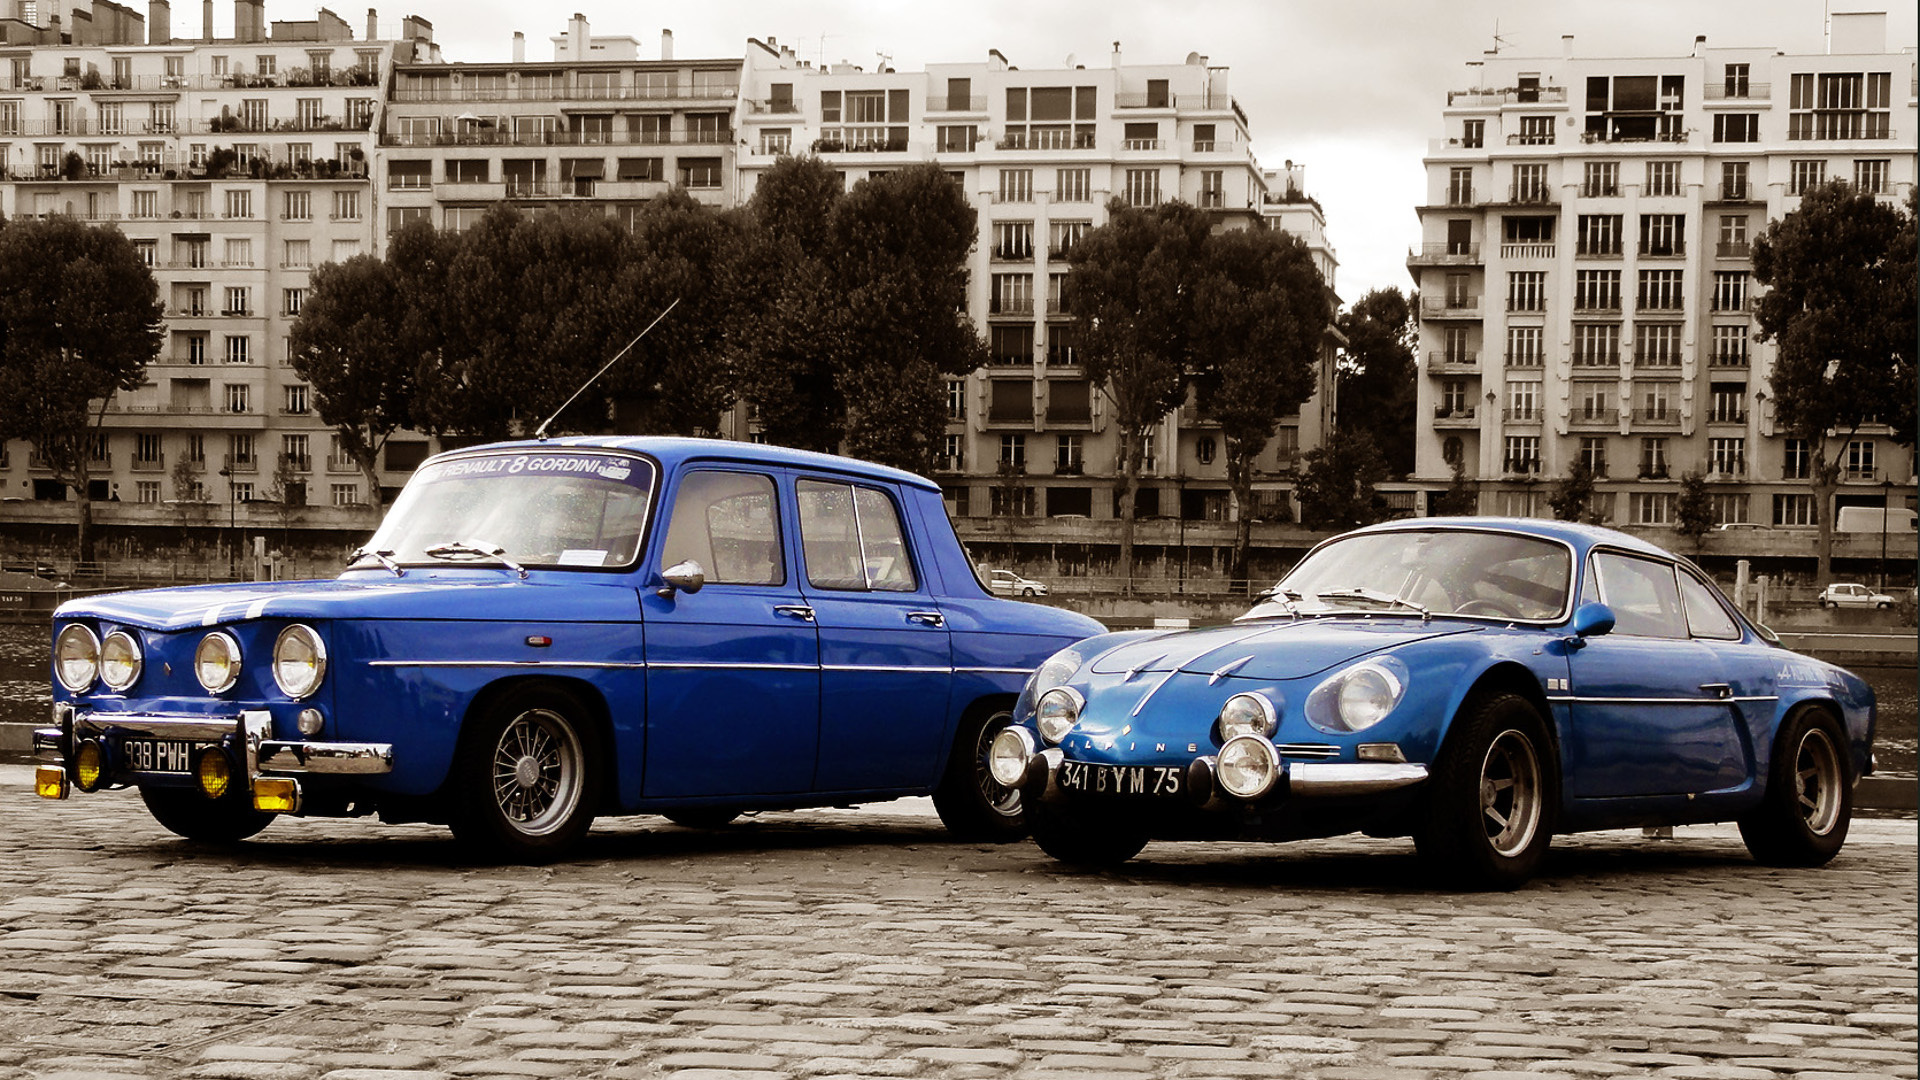 cars exempt from Paris old car traffic ban